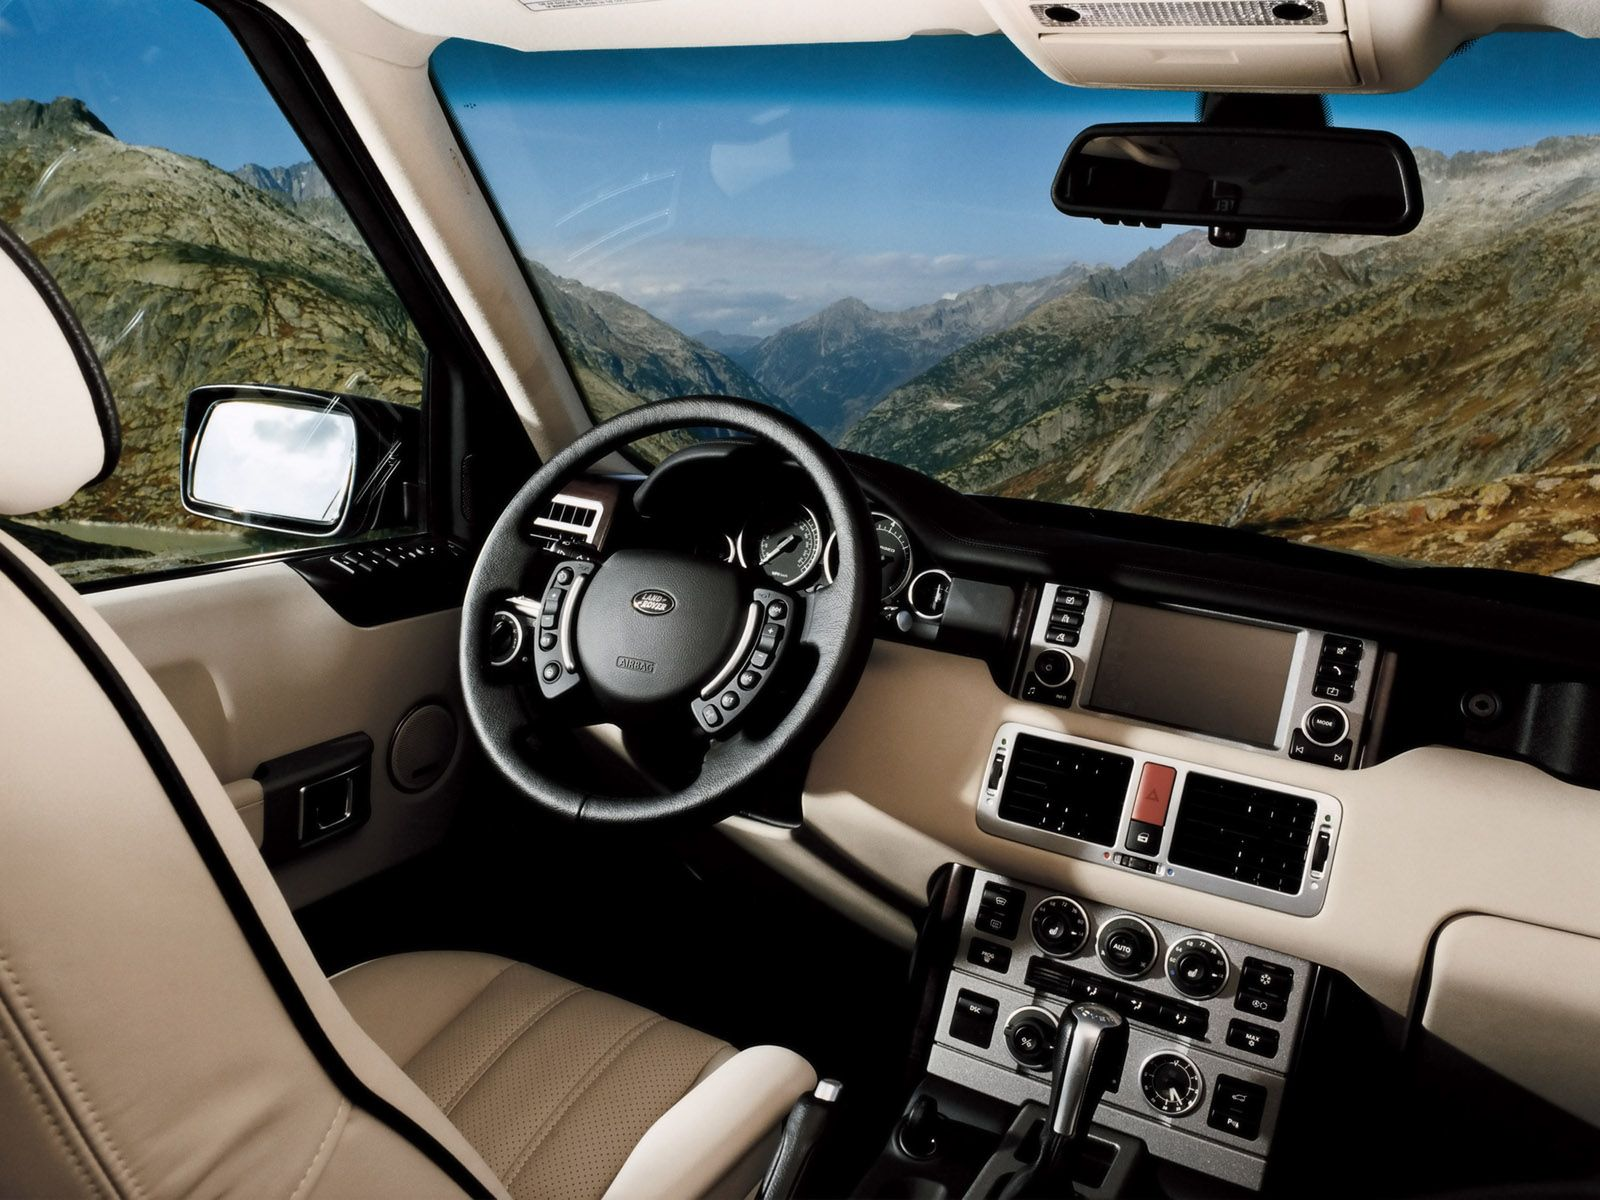 The interior of a 2006 land rover range rover